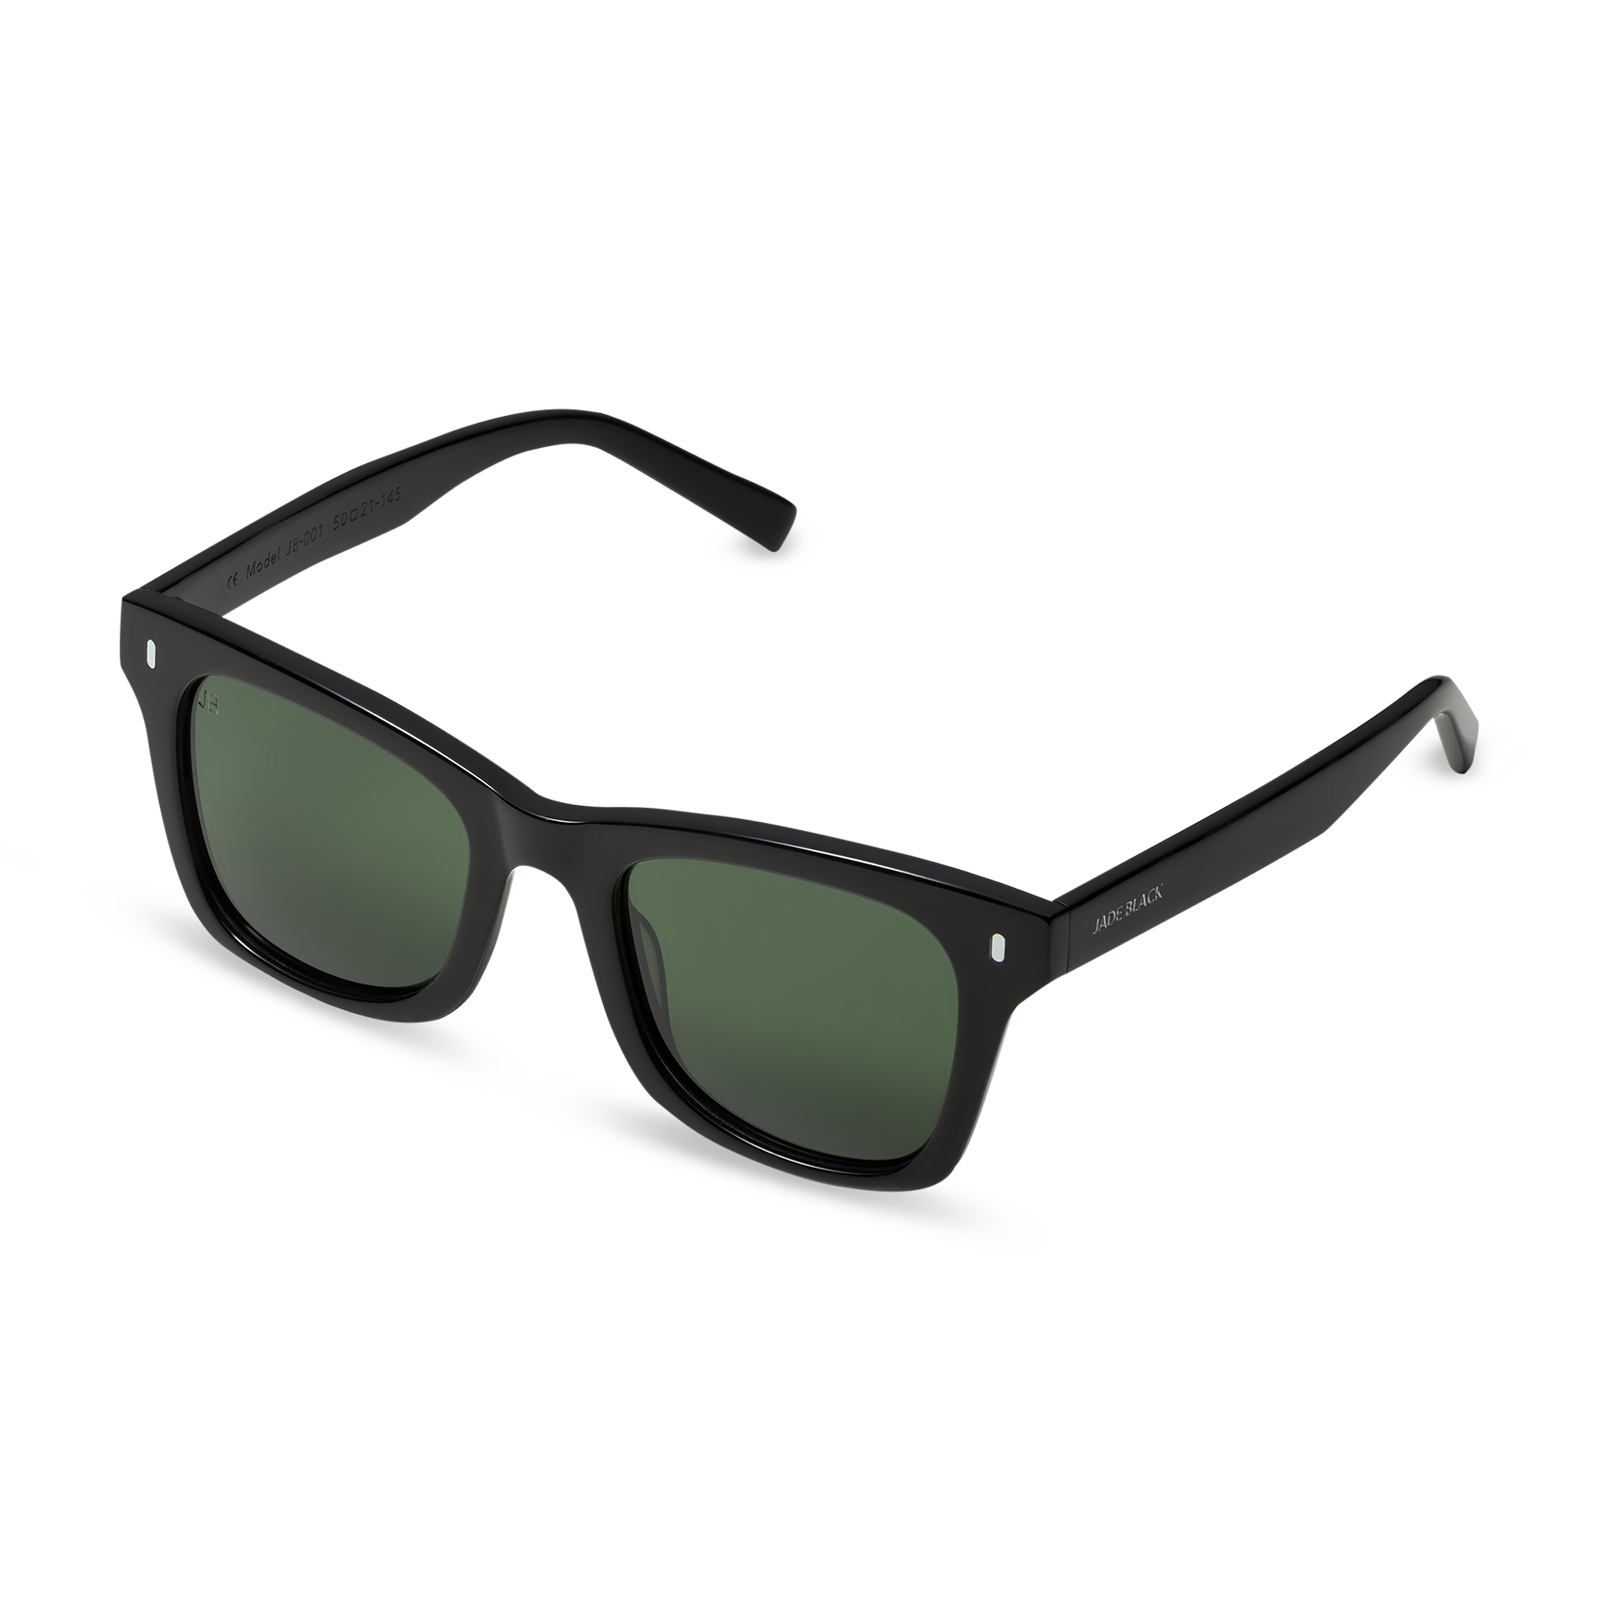 sunglasses product photo, spectacles product photo, optical instrument product photo, sunglass product photo